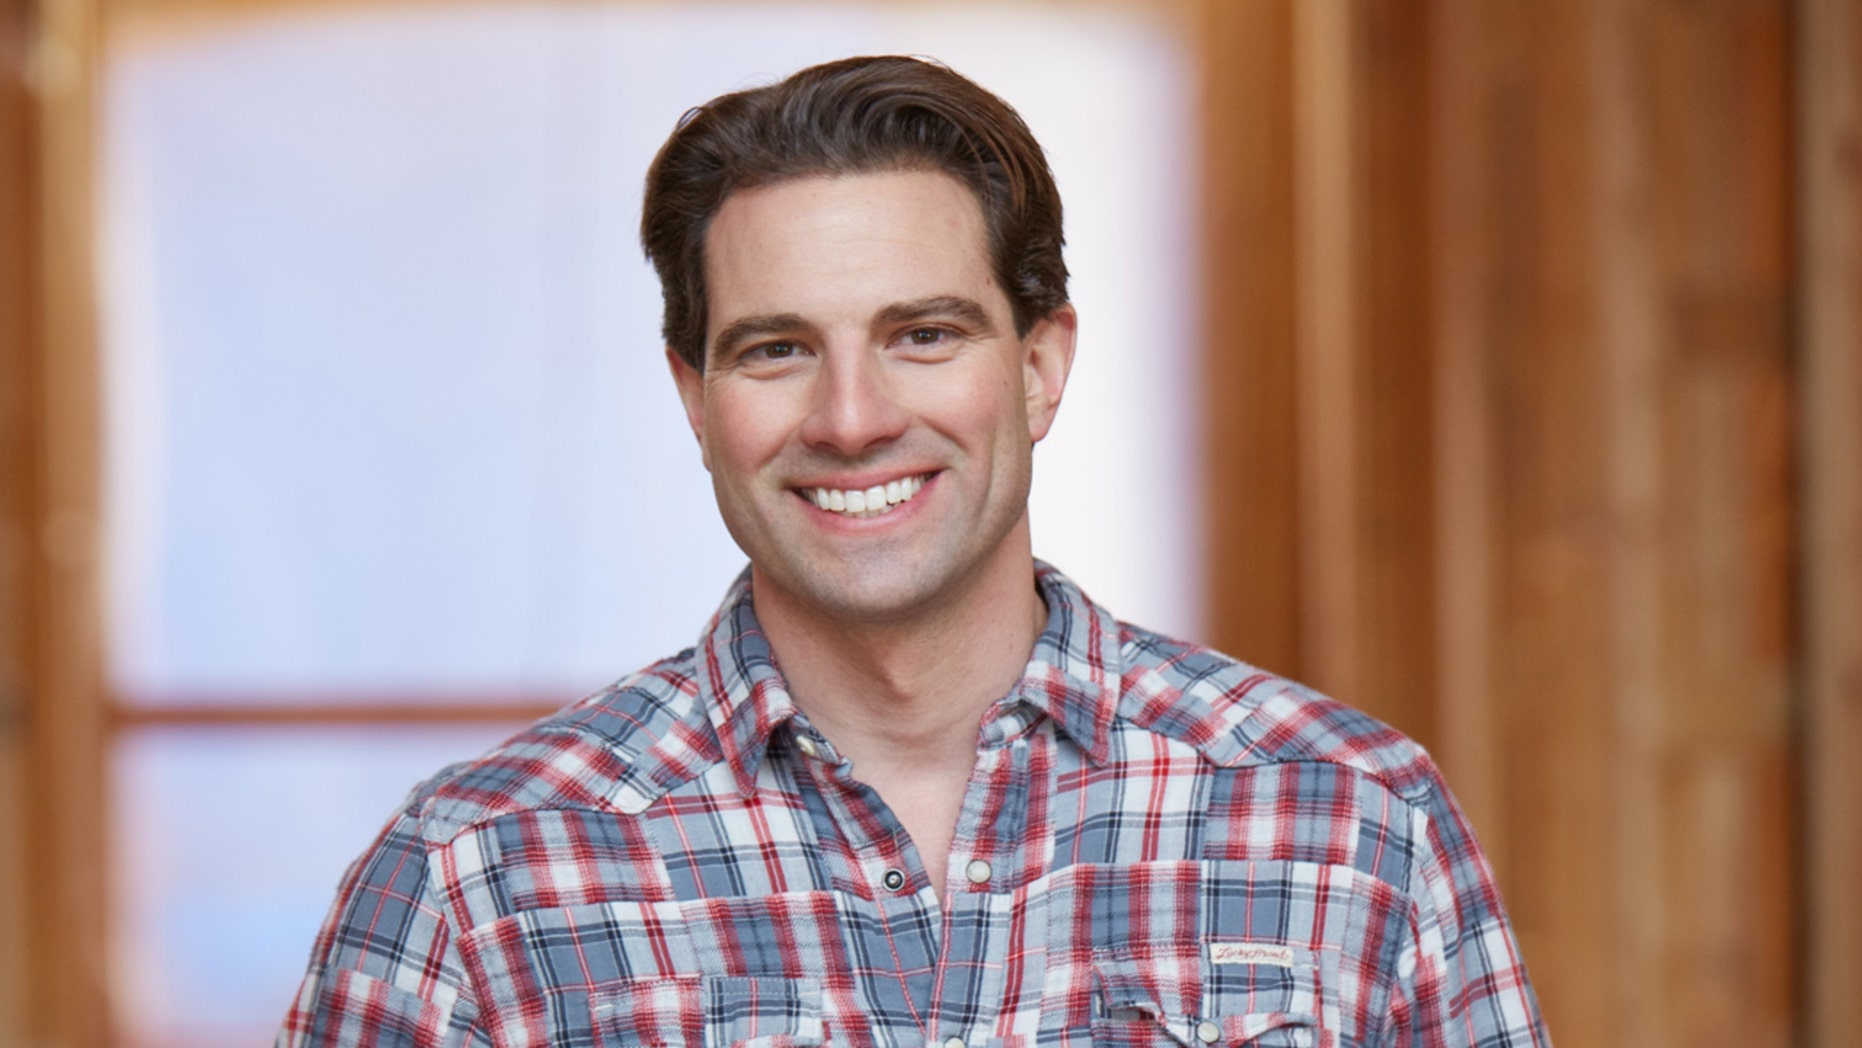 Scott McGillivray has been helping homeowners make the most of their properties for years.